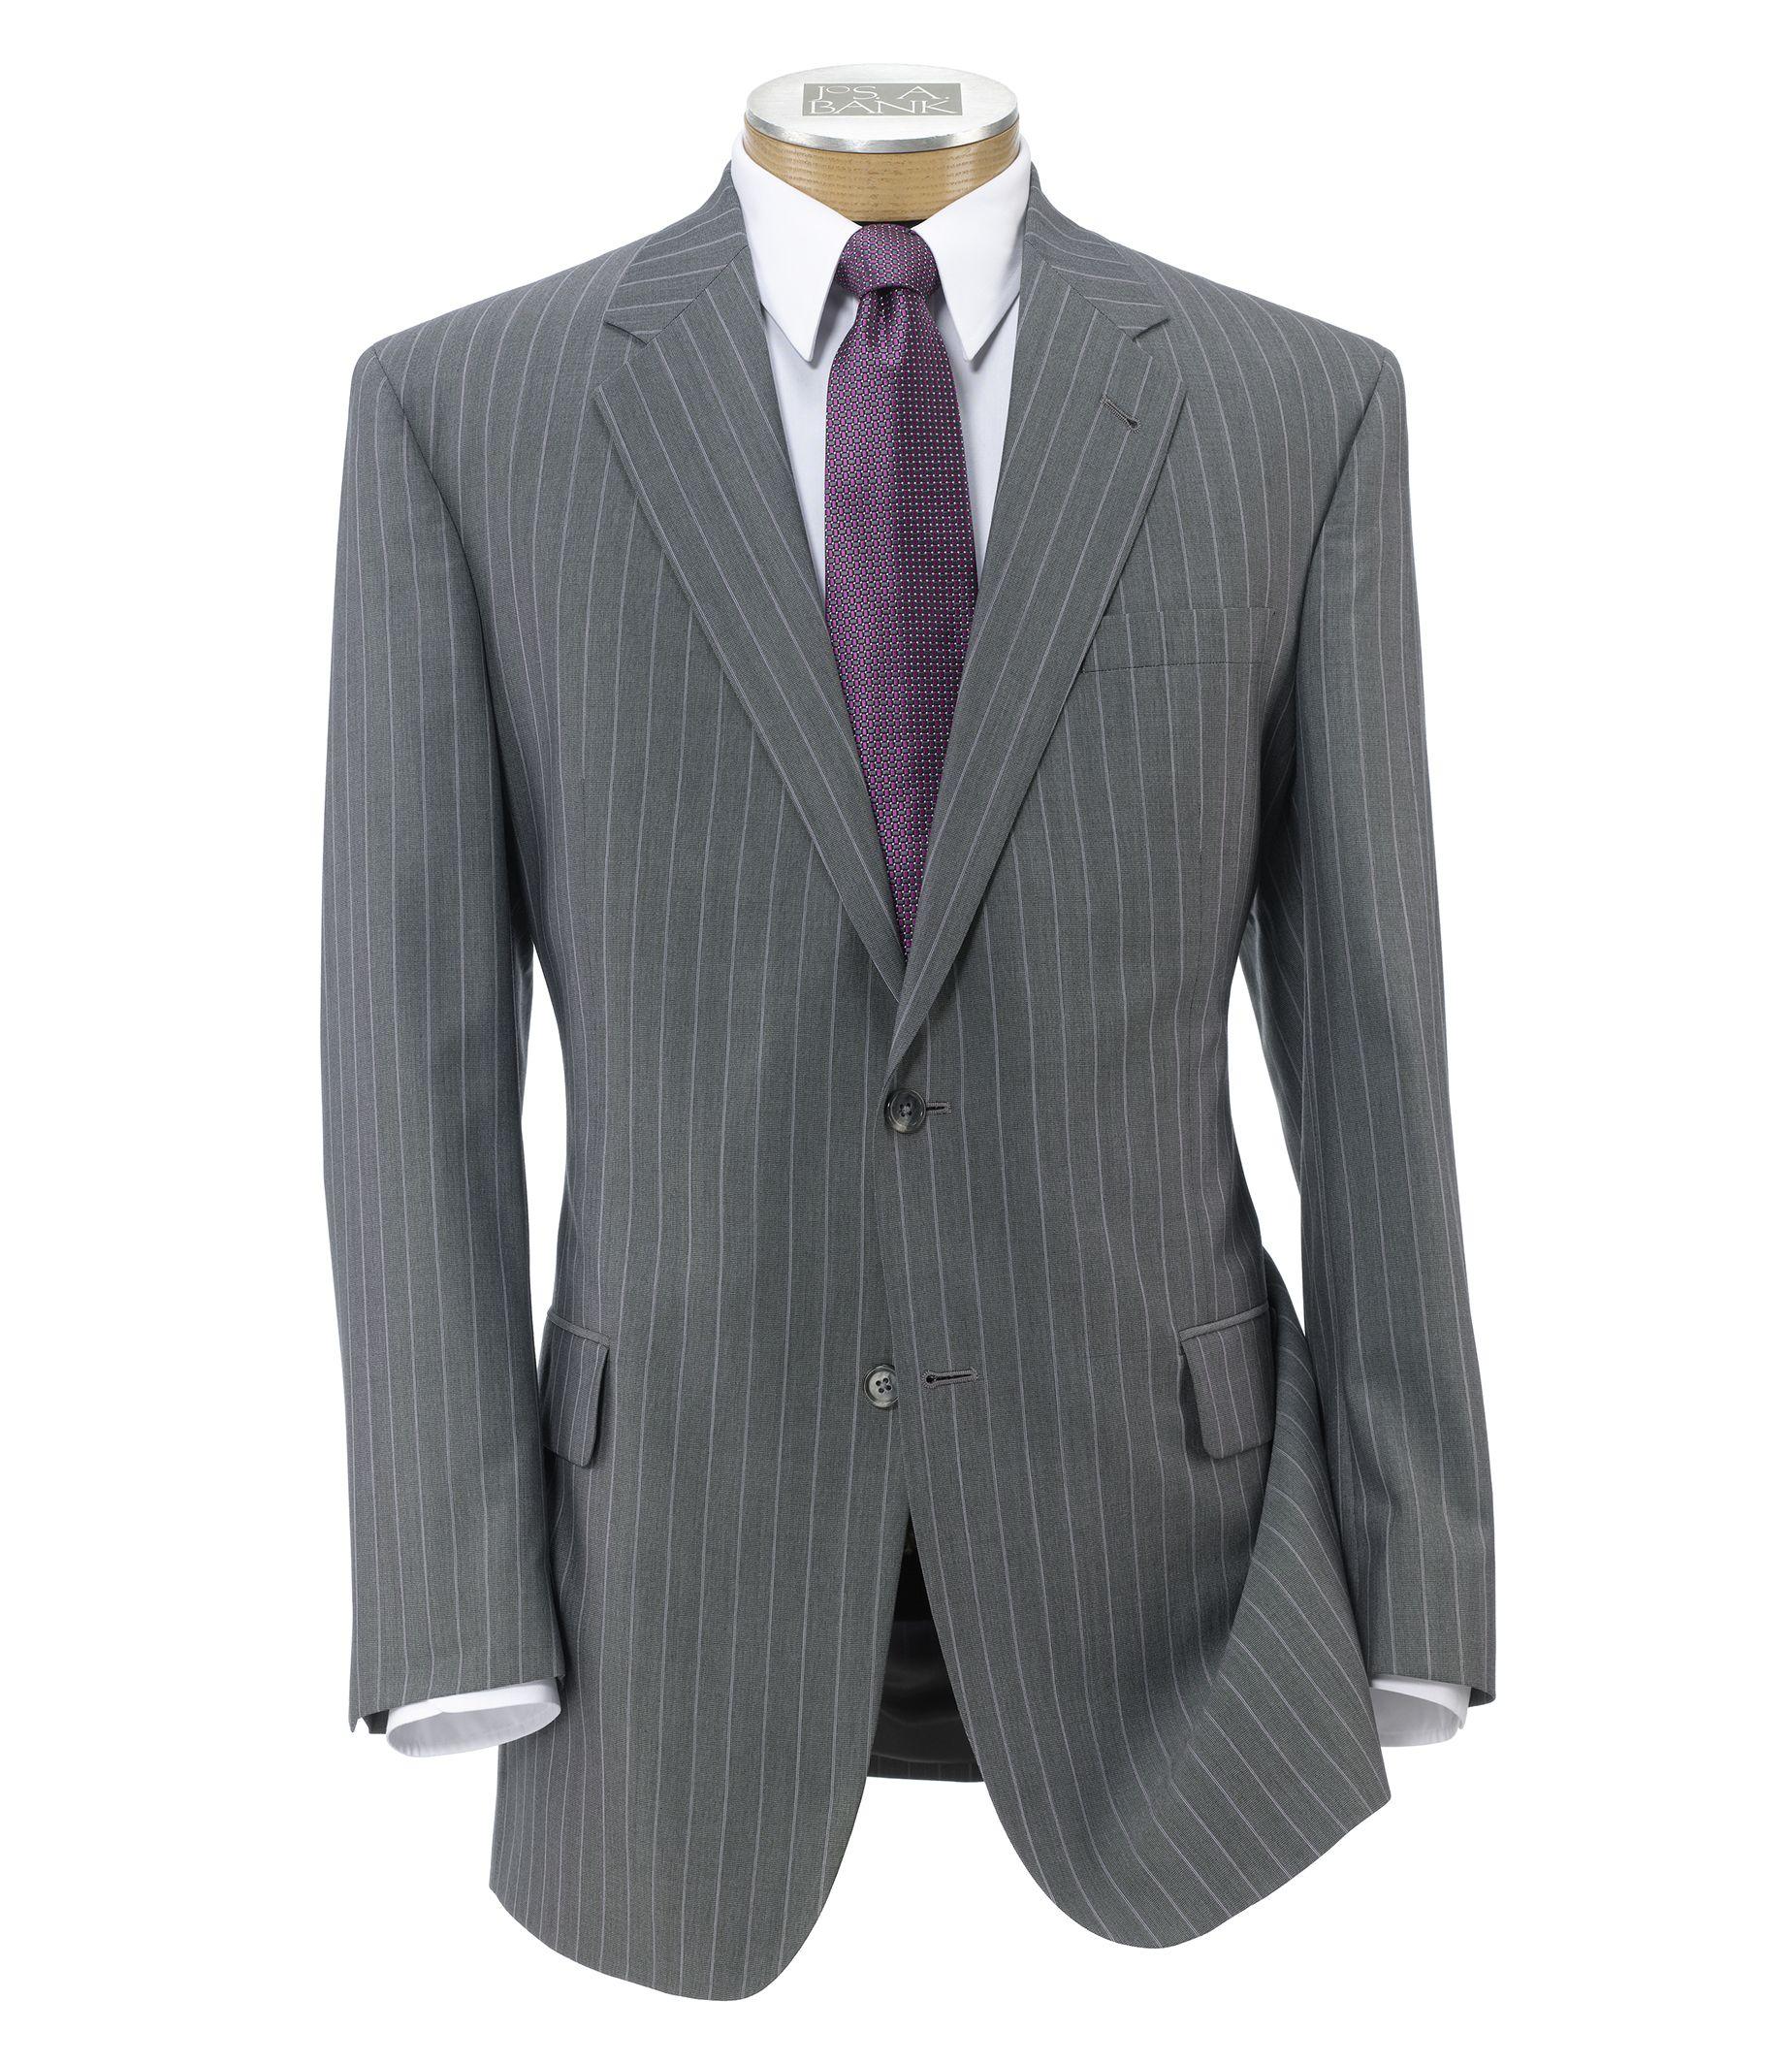 Signature Imperial Wool/Silk Suit with Pleated Trousers- Light Grey Dot